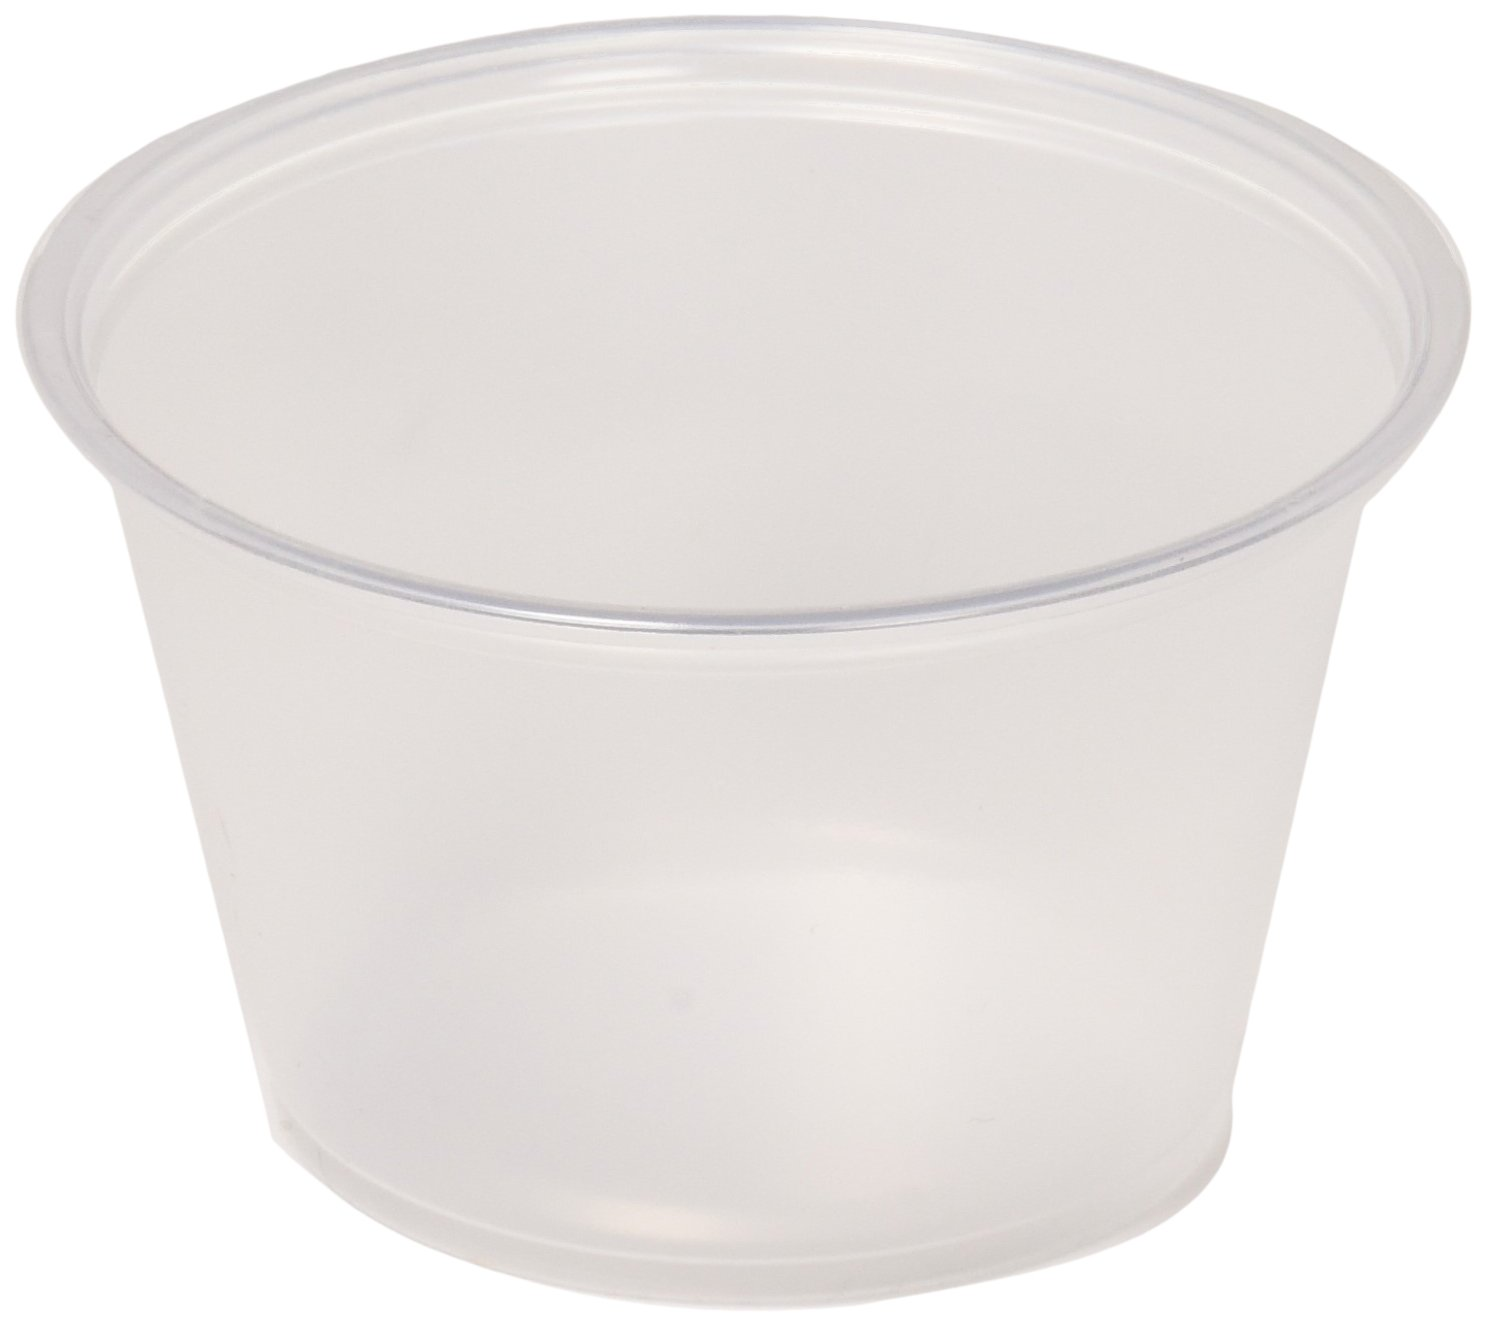 Solo Plastic Cups 0.5 oz Clear Portion Container for Food, Beverages, Crafts (Pack of 125) Solo Cups